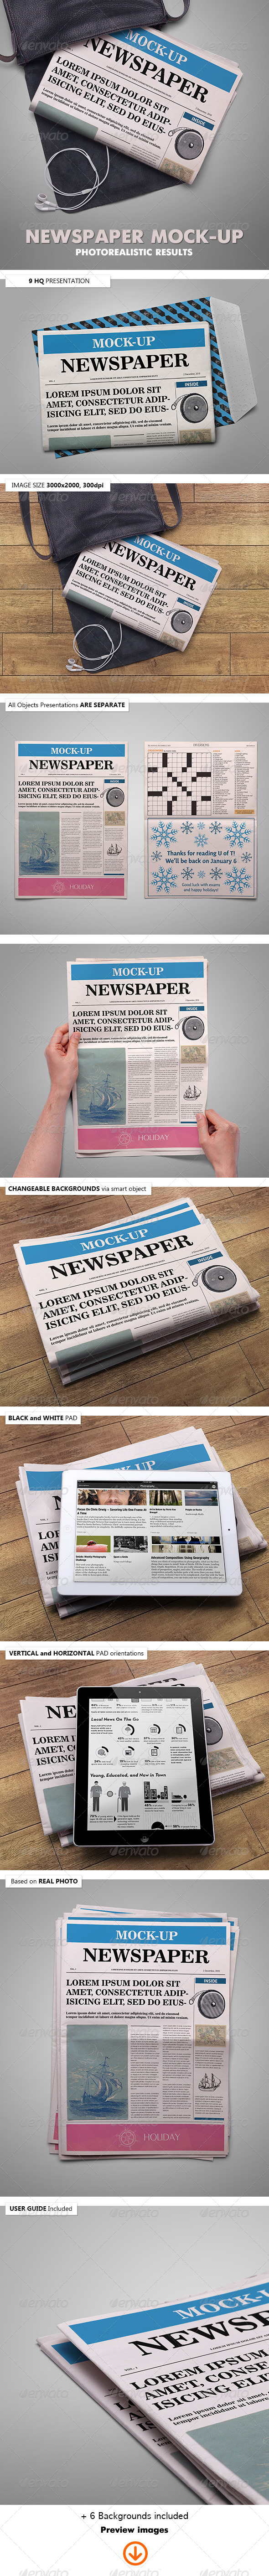 GraphicRiver Newspaper Mock-Up 6906139